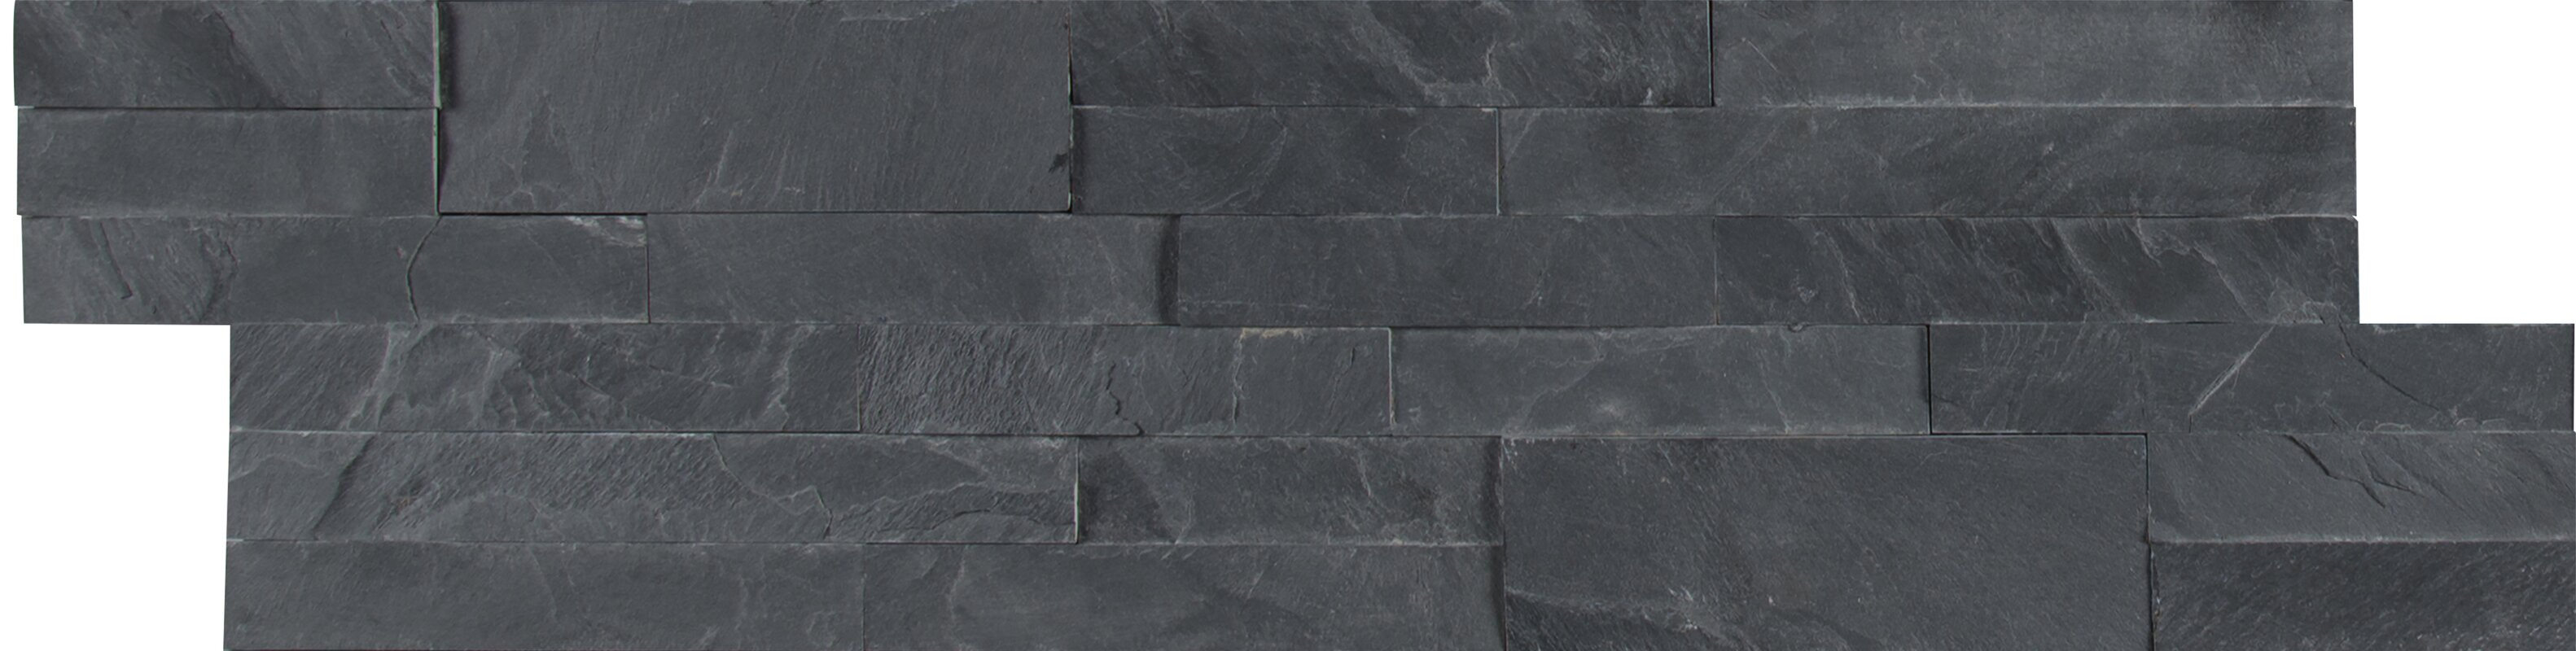 Msi midnight ash veneer peel and stick natural slate subway tile midnight ash veneer peel and stick natural slate subway tile in black dailygadgetfo Choice Image